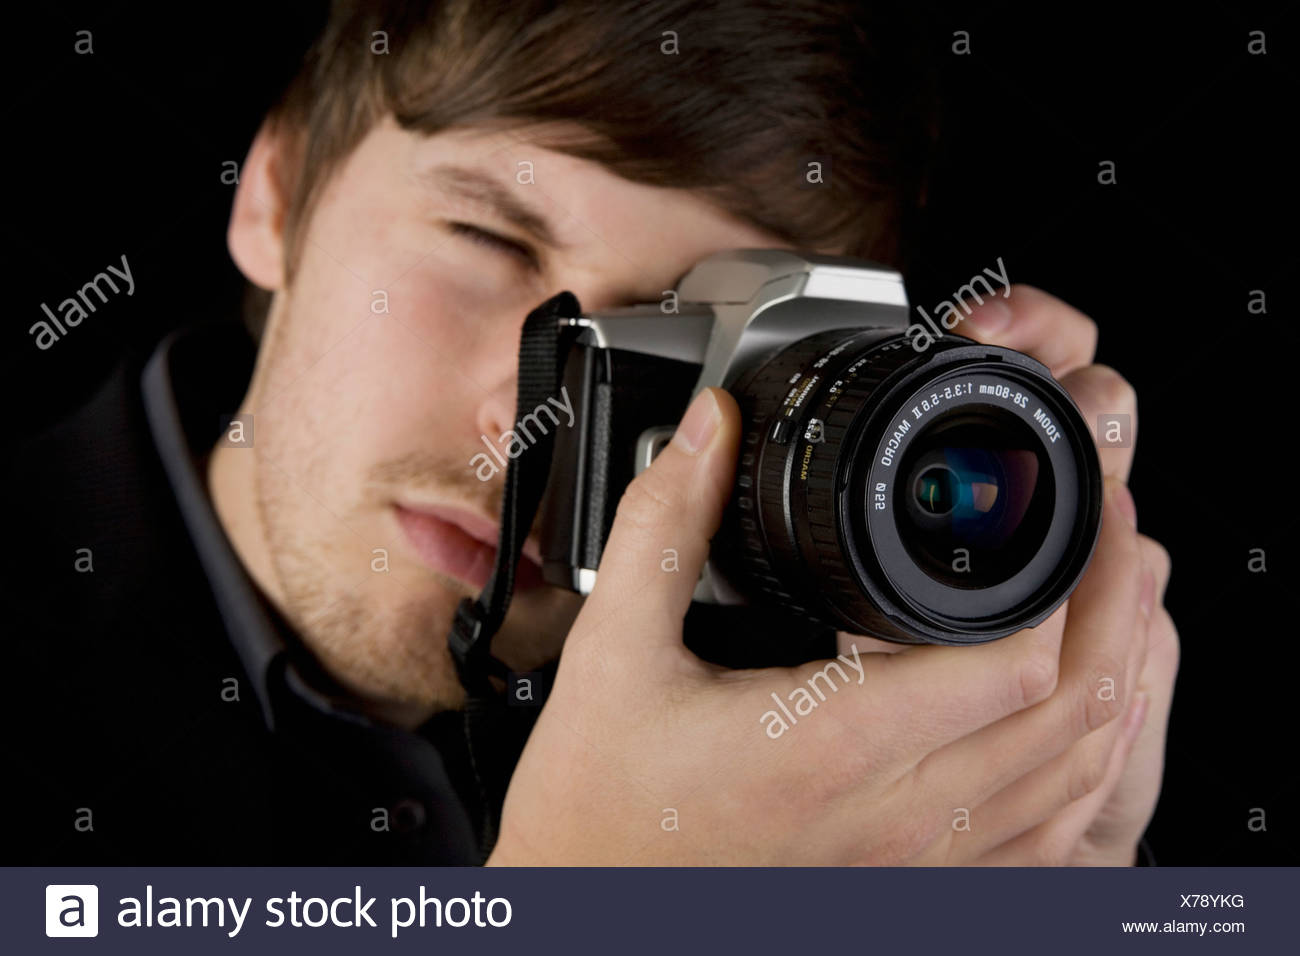 A man taking a photograph - Stock Image